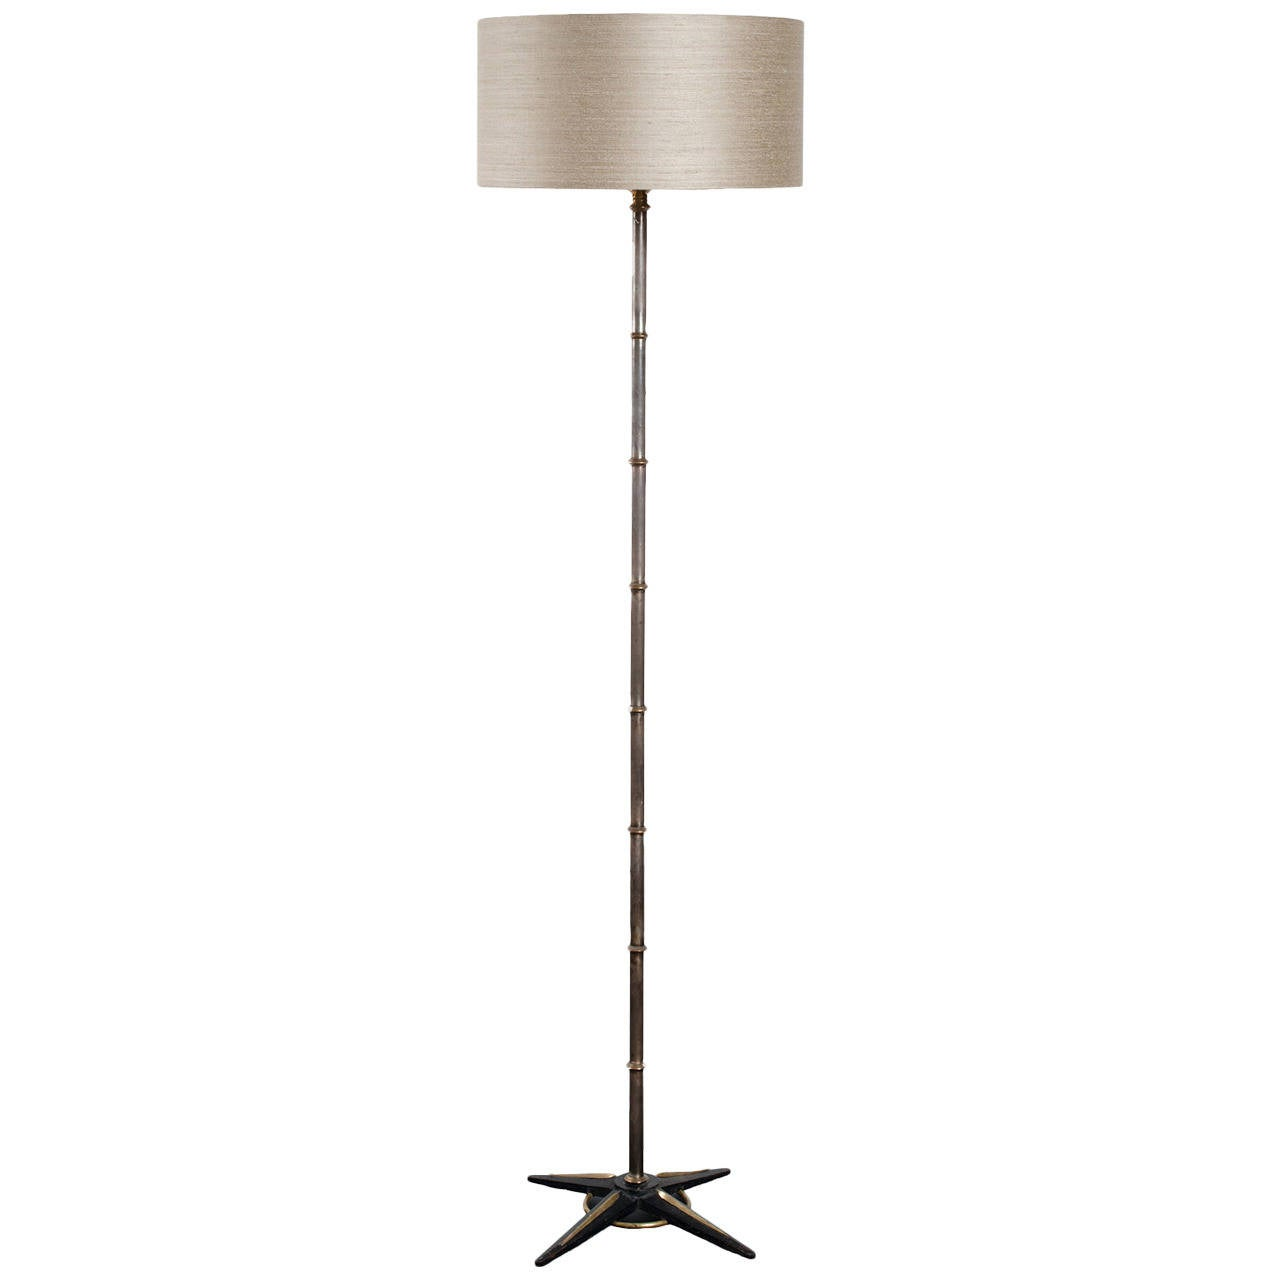 Jacques Adnet Style Floor Lamp